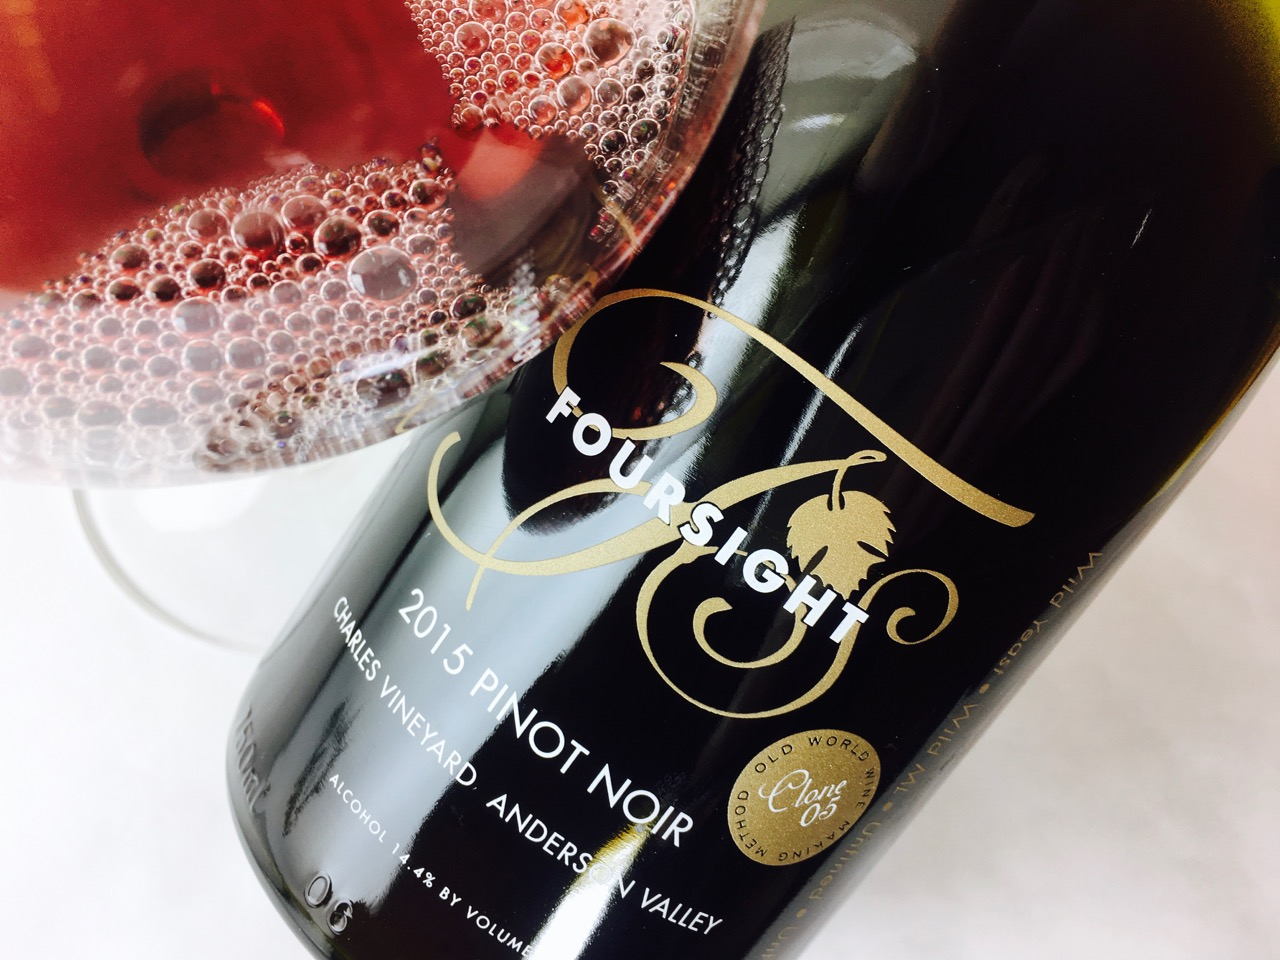 2015 Foursight Pinot Noir Clone 05 Charles Vineyard Anderson Valley